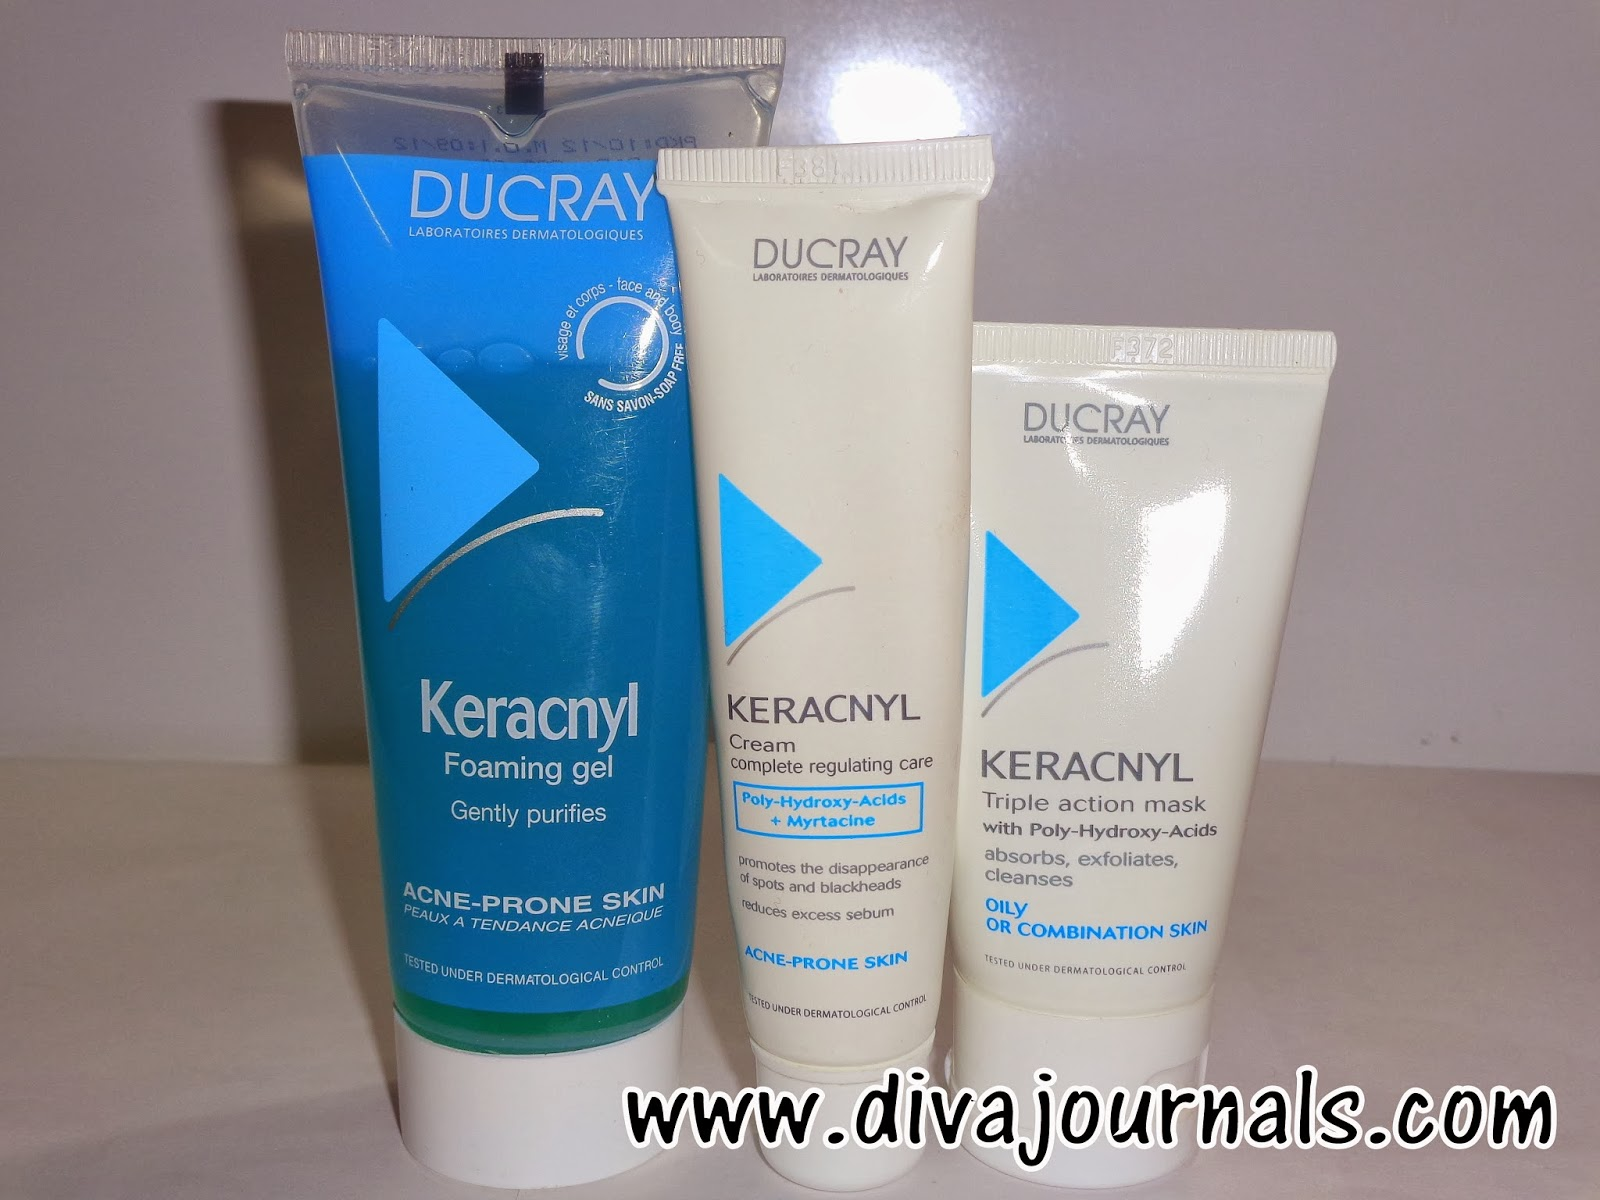 Ducray Keracnyl- Foaming Gel, Complete Regulating Care Cream,Triple Action Mask Reviews